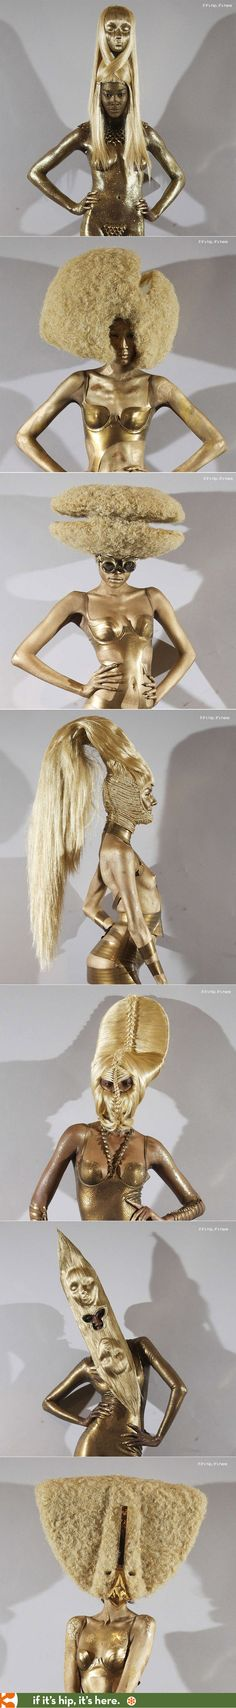 Golden Wigs from Charlie Le Mindu's 2013 Haute Coiffure Collection.